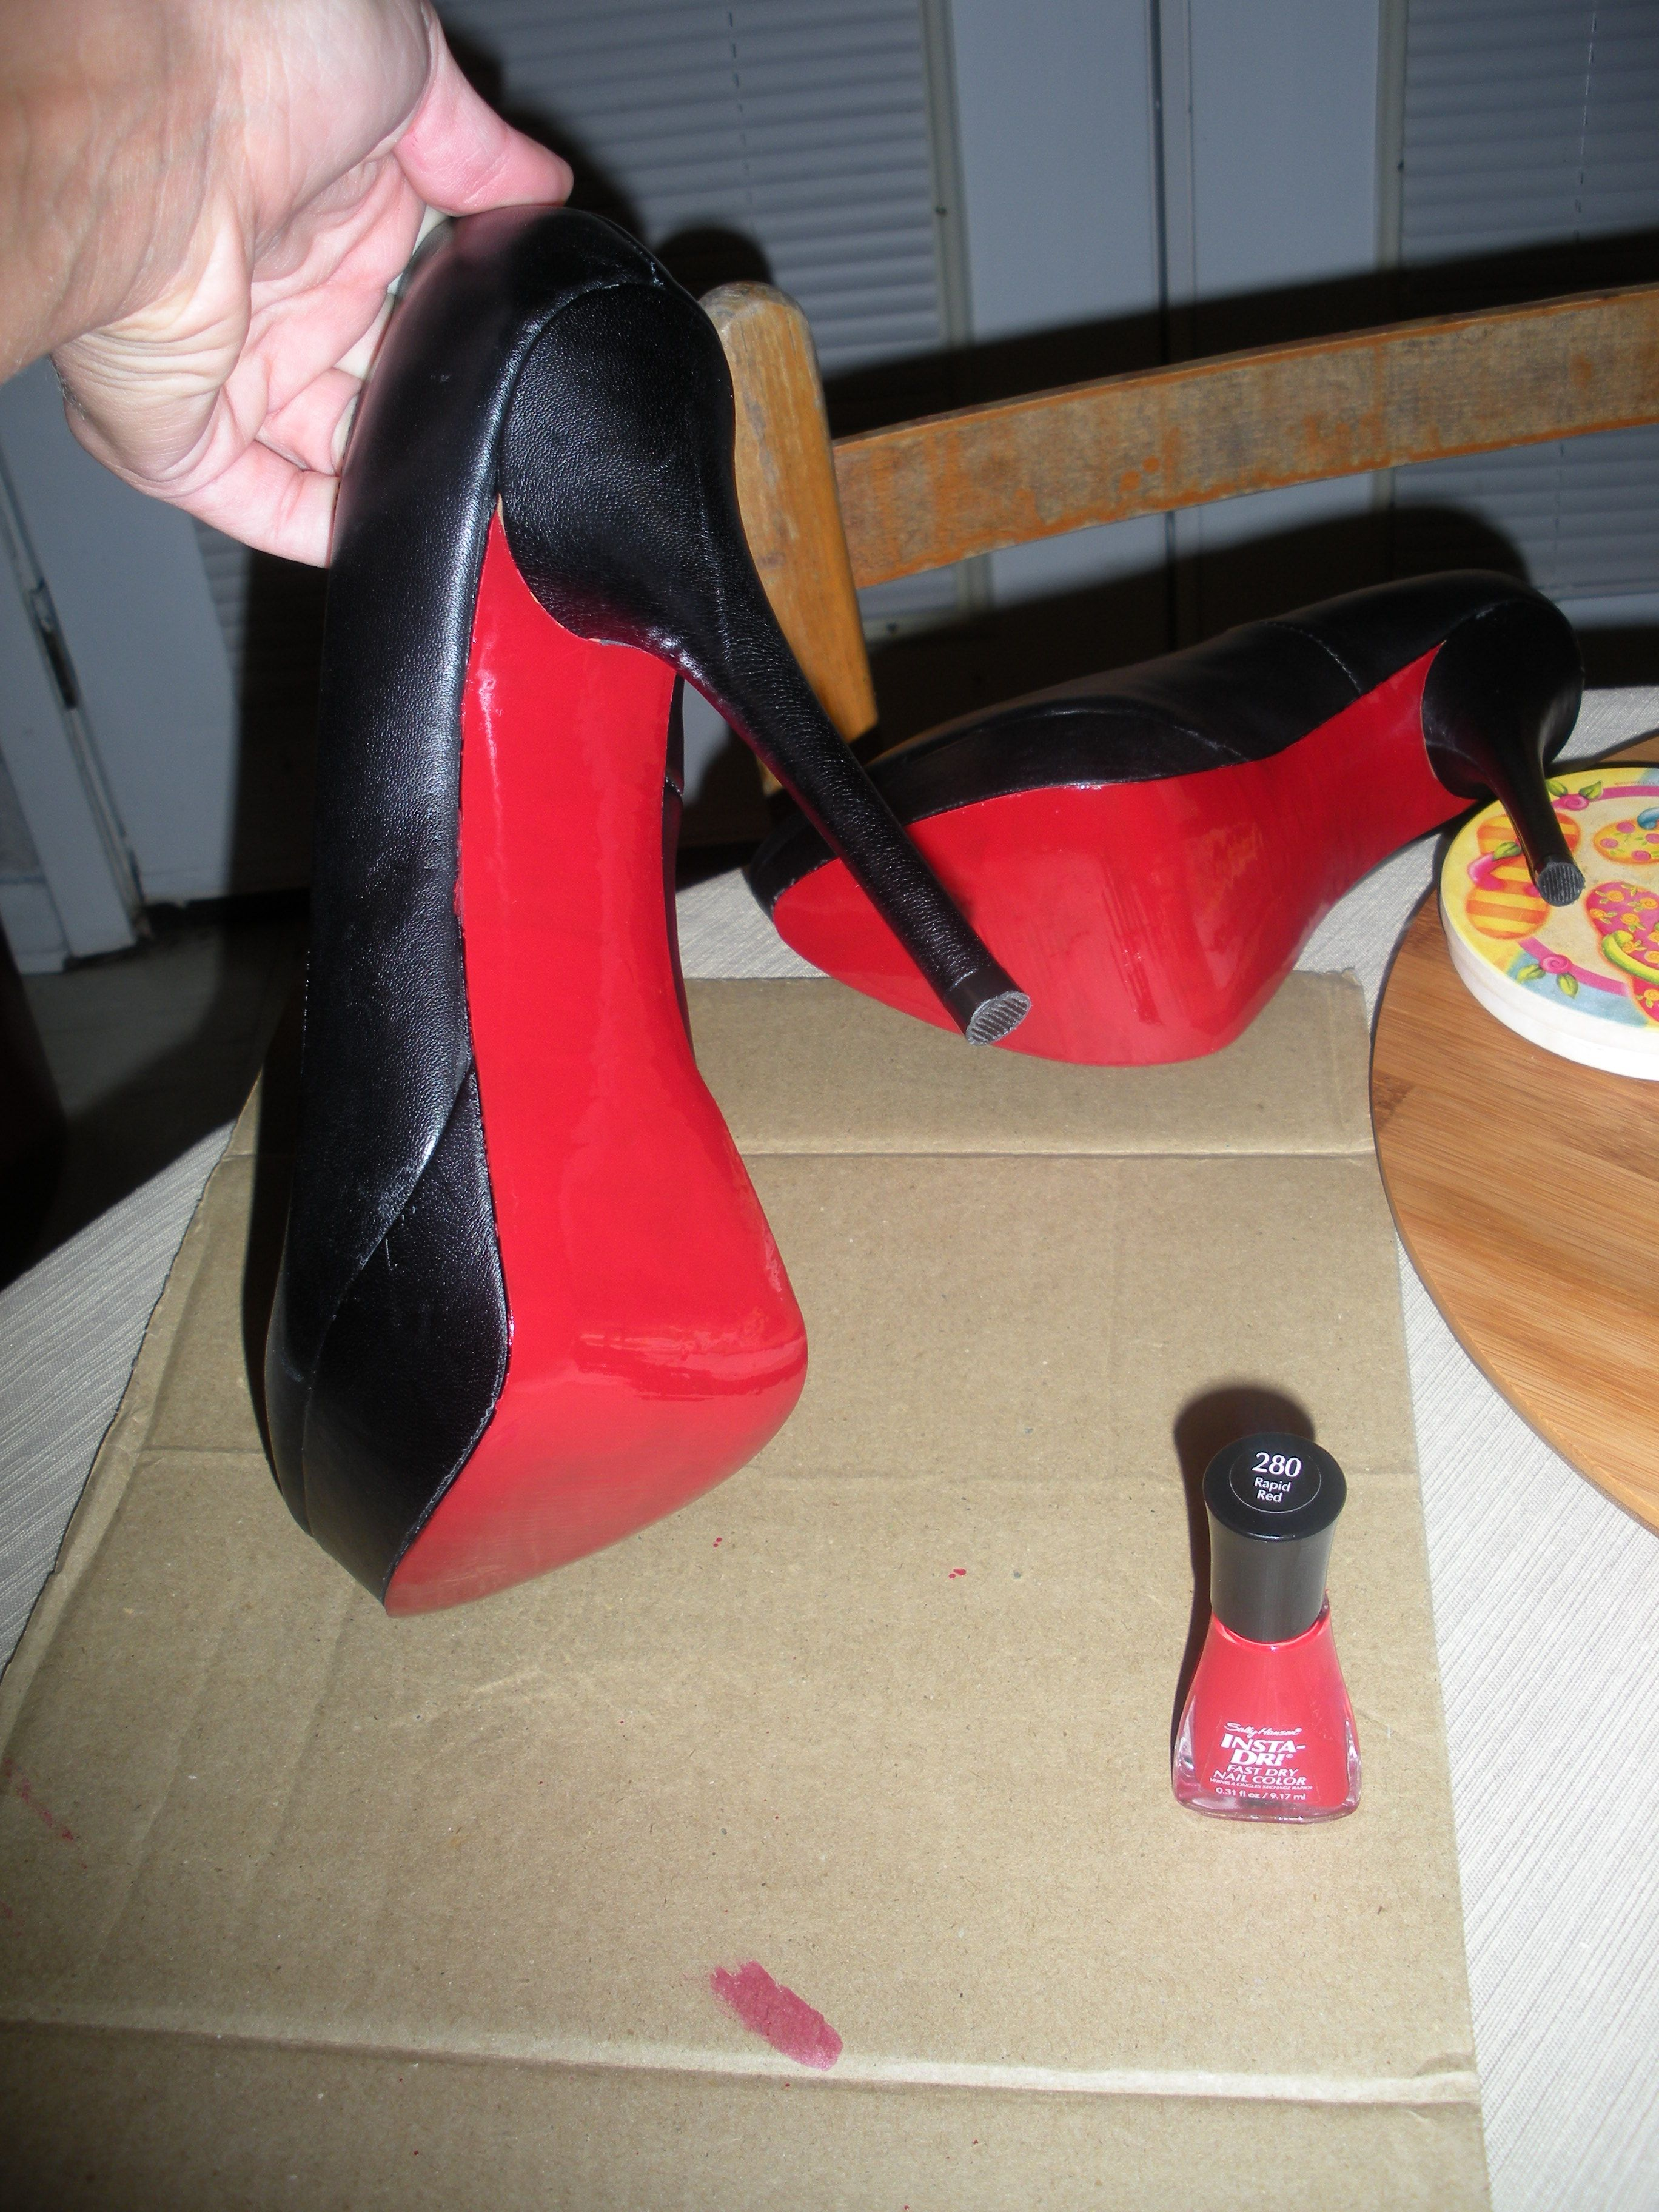 46c62230e946 Super cheap and easy fashion craft here...I painted the bottoms of my Steve  Madden shoes red...looks a lot like Christian Louboutin shoes now!